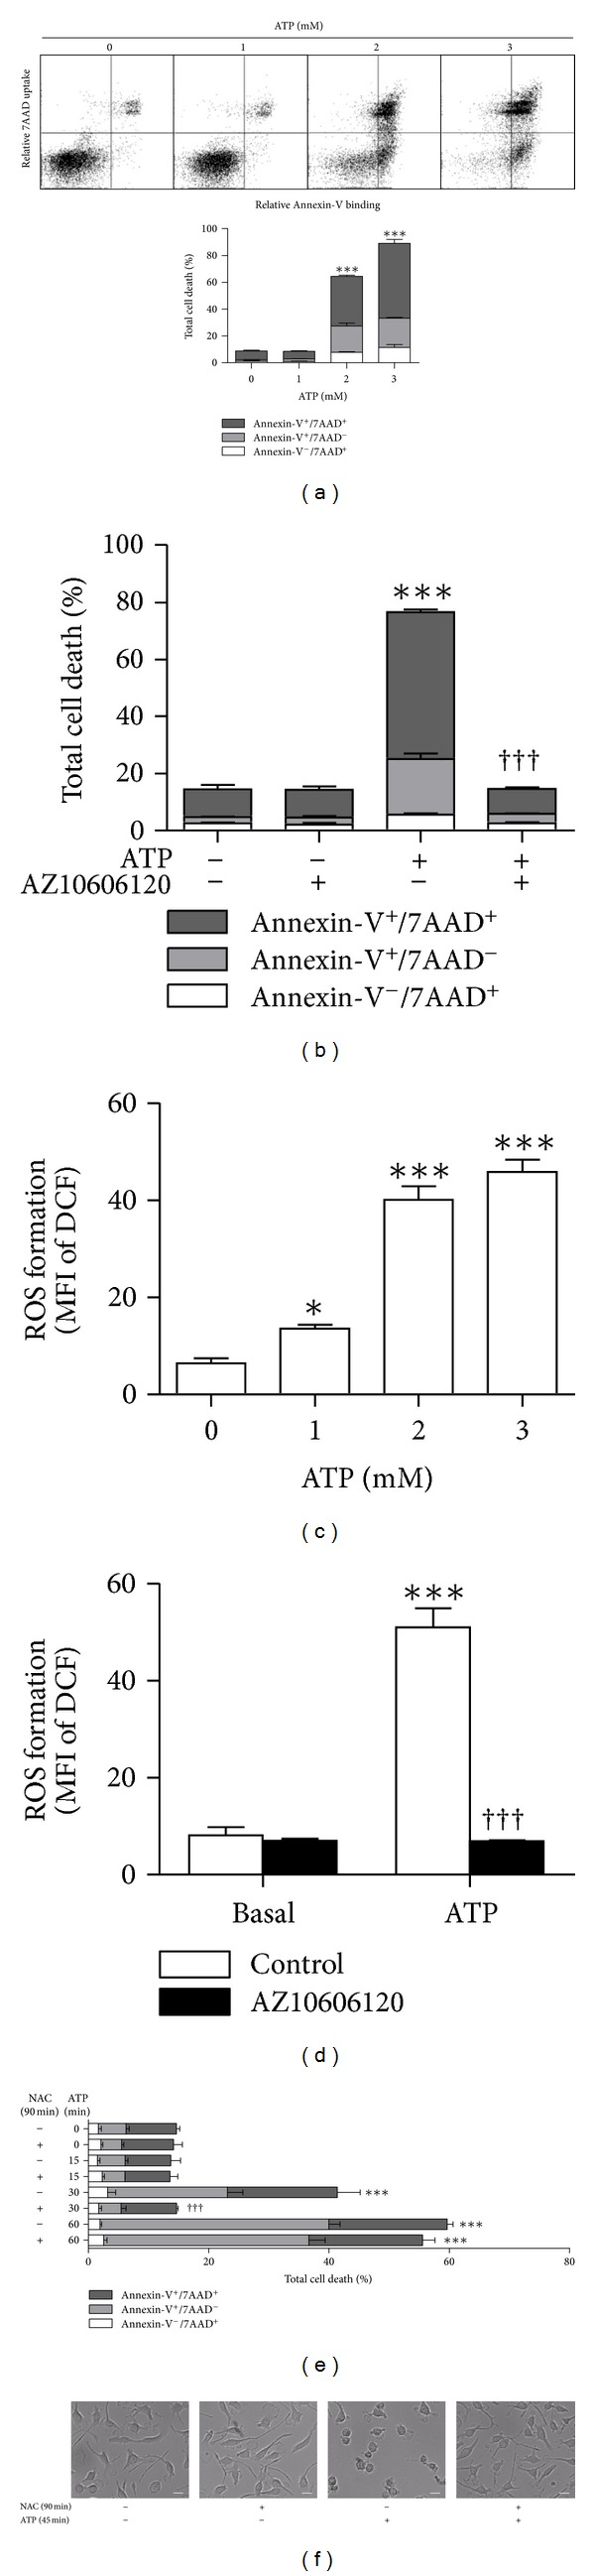 P2X7 activation induces cell death in EOC13 microglial cells. (a) Adherent EOC13 cells in complete DMEM medium were incubated in the absence or presence of varying concentrations of ATP (as indicated) at 37°C for 24 h. (b) Adherent cells in complete DMEM medium were preincubated in the absence or presence of 10 μ M AZ10606120 at 37°C for 15 min and then in the absence or presence of 2 mM ATP for 24 h. (e and f) Adherent cells in complete DMEM medium were incubated in the absence or presence of 40 mM NAC at 37°C for 90 min and incubated in the absence or presence of 2 mM ATP for the final (e) 15–60 min or (f) 45 min (of the 90 min incubation), and then the medium replaced with fresh complete DMEM medium for 24 h. (a, b, and e) Cells were harvested, labelled with <t>Annexin-V-Fluorescein</t> and 7AAD, and the percentage of Annexin-V − /7AAD + , Annexin-V + /7AAD − , and Annexin-V + /7AAD + cells (together representing total cell death) determined by flow cytometry. (f) DIC images of cell morphology were acquired by microscopy. Bars represent 20 μ m. (c) Adherent DCF-loaded cells in complete DMEM medium were incubated in the absence (basal) or presence of varying concentrations of ATP (as indicated) at 37°C for 15 min. (d) Adherent DCF-loaded cells in complete DMEM medium were preincubated in the absence (control) or presence of 10 μ M AZ10606120 at 37°C for 15 min and then in the absence (basal) or presence of 2 mM ATP for 15 min. (c and d) Incubations were stopped by the addition of MgCl 2 medium and centrifugation. Mean fluorescence intensity (MFI) of DCF (ROS formation) was determined by flow cytometry. Results shown as (a) dot plots of one representative set of data demonstrating the quadrant markers and (a–e) means ± SD, n = 3; *** P